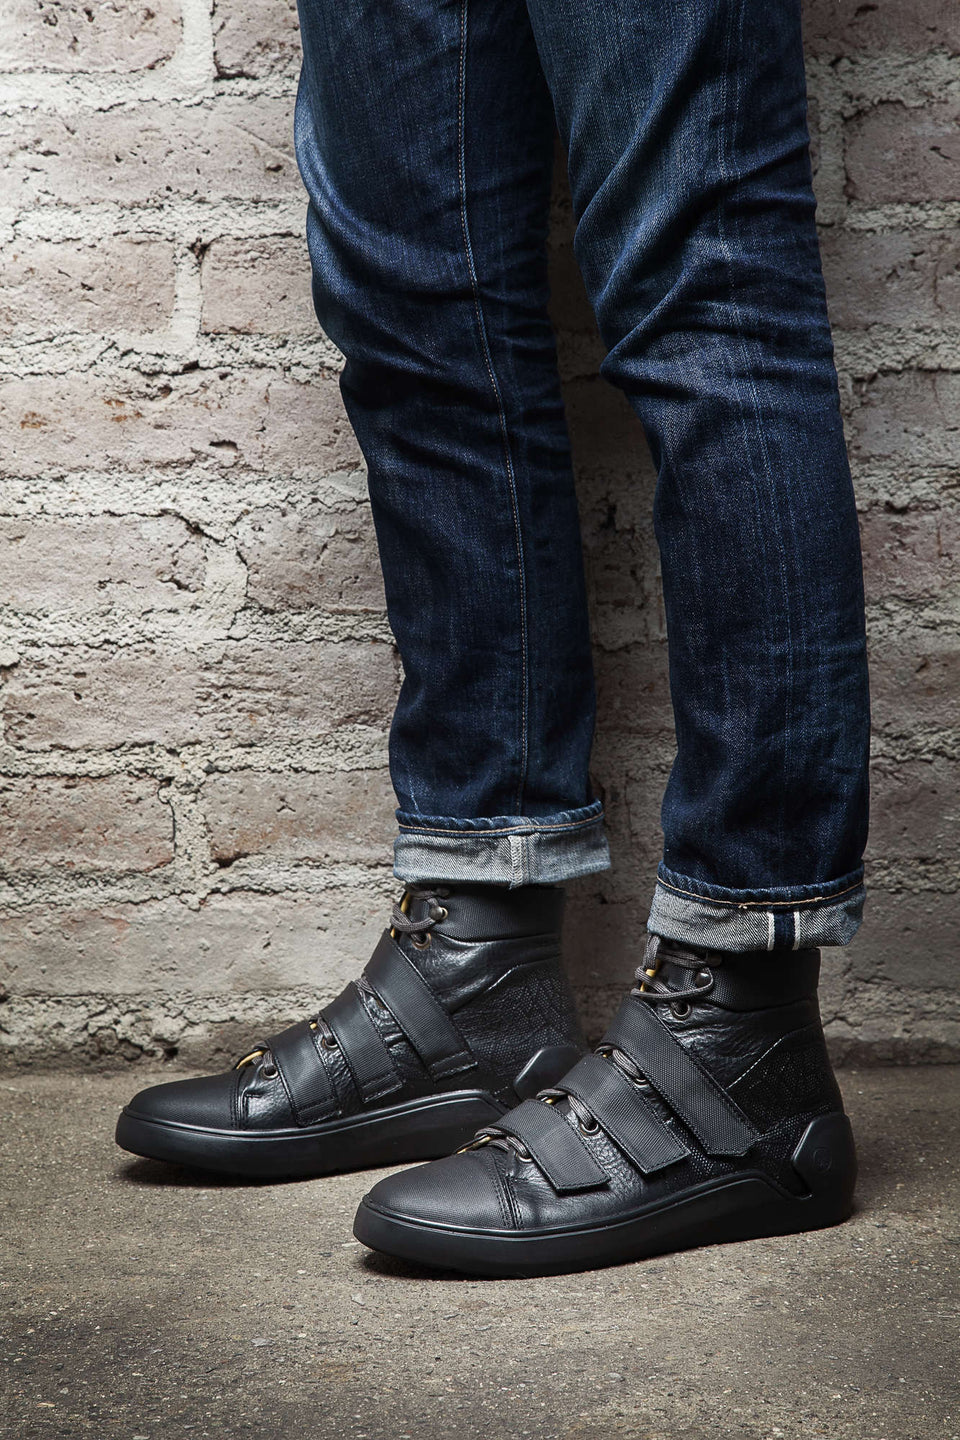 Gilbert Motorcycle Sneakers By Umberto Luce